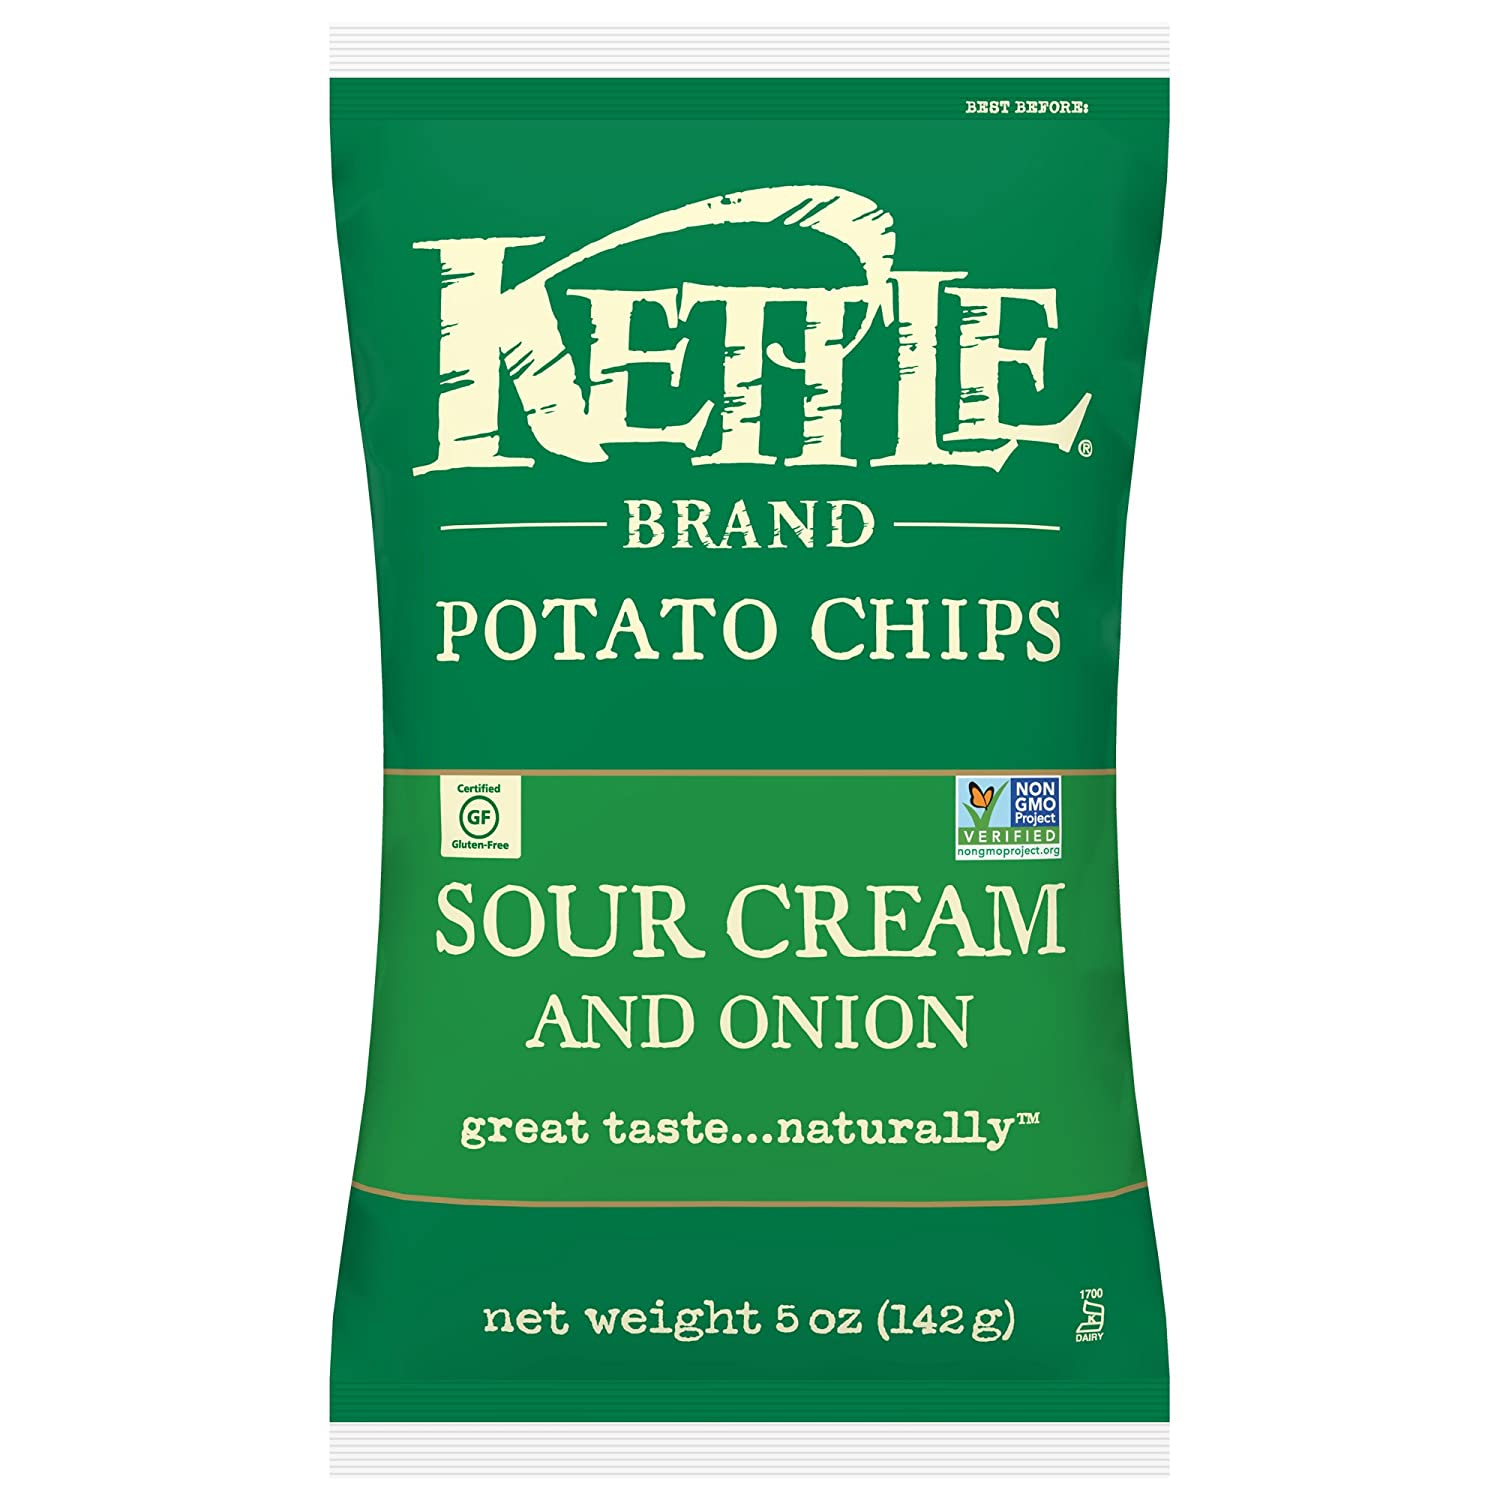 Kettle Brand Potato Chips, Sour Cream and Onion, 5 Ounce (Pack of 15)